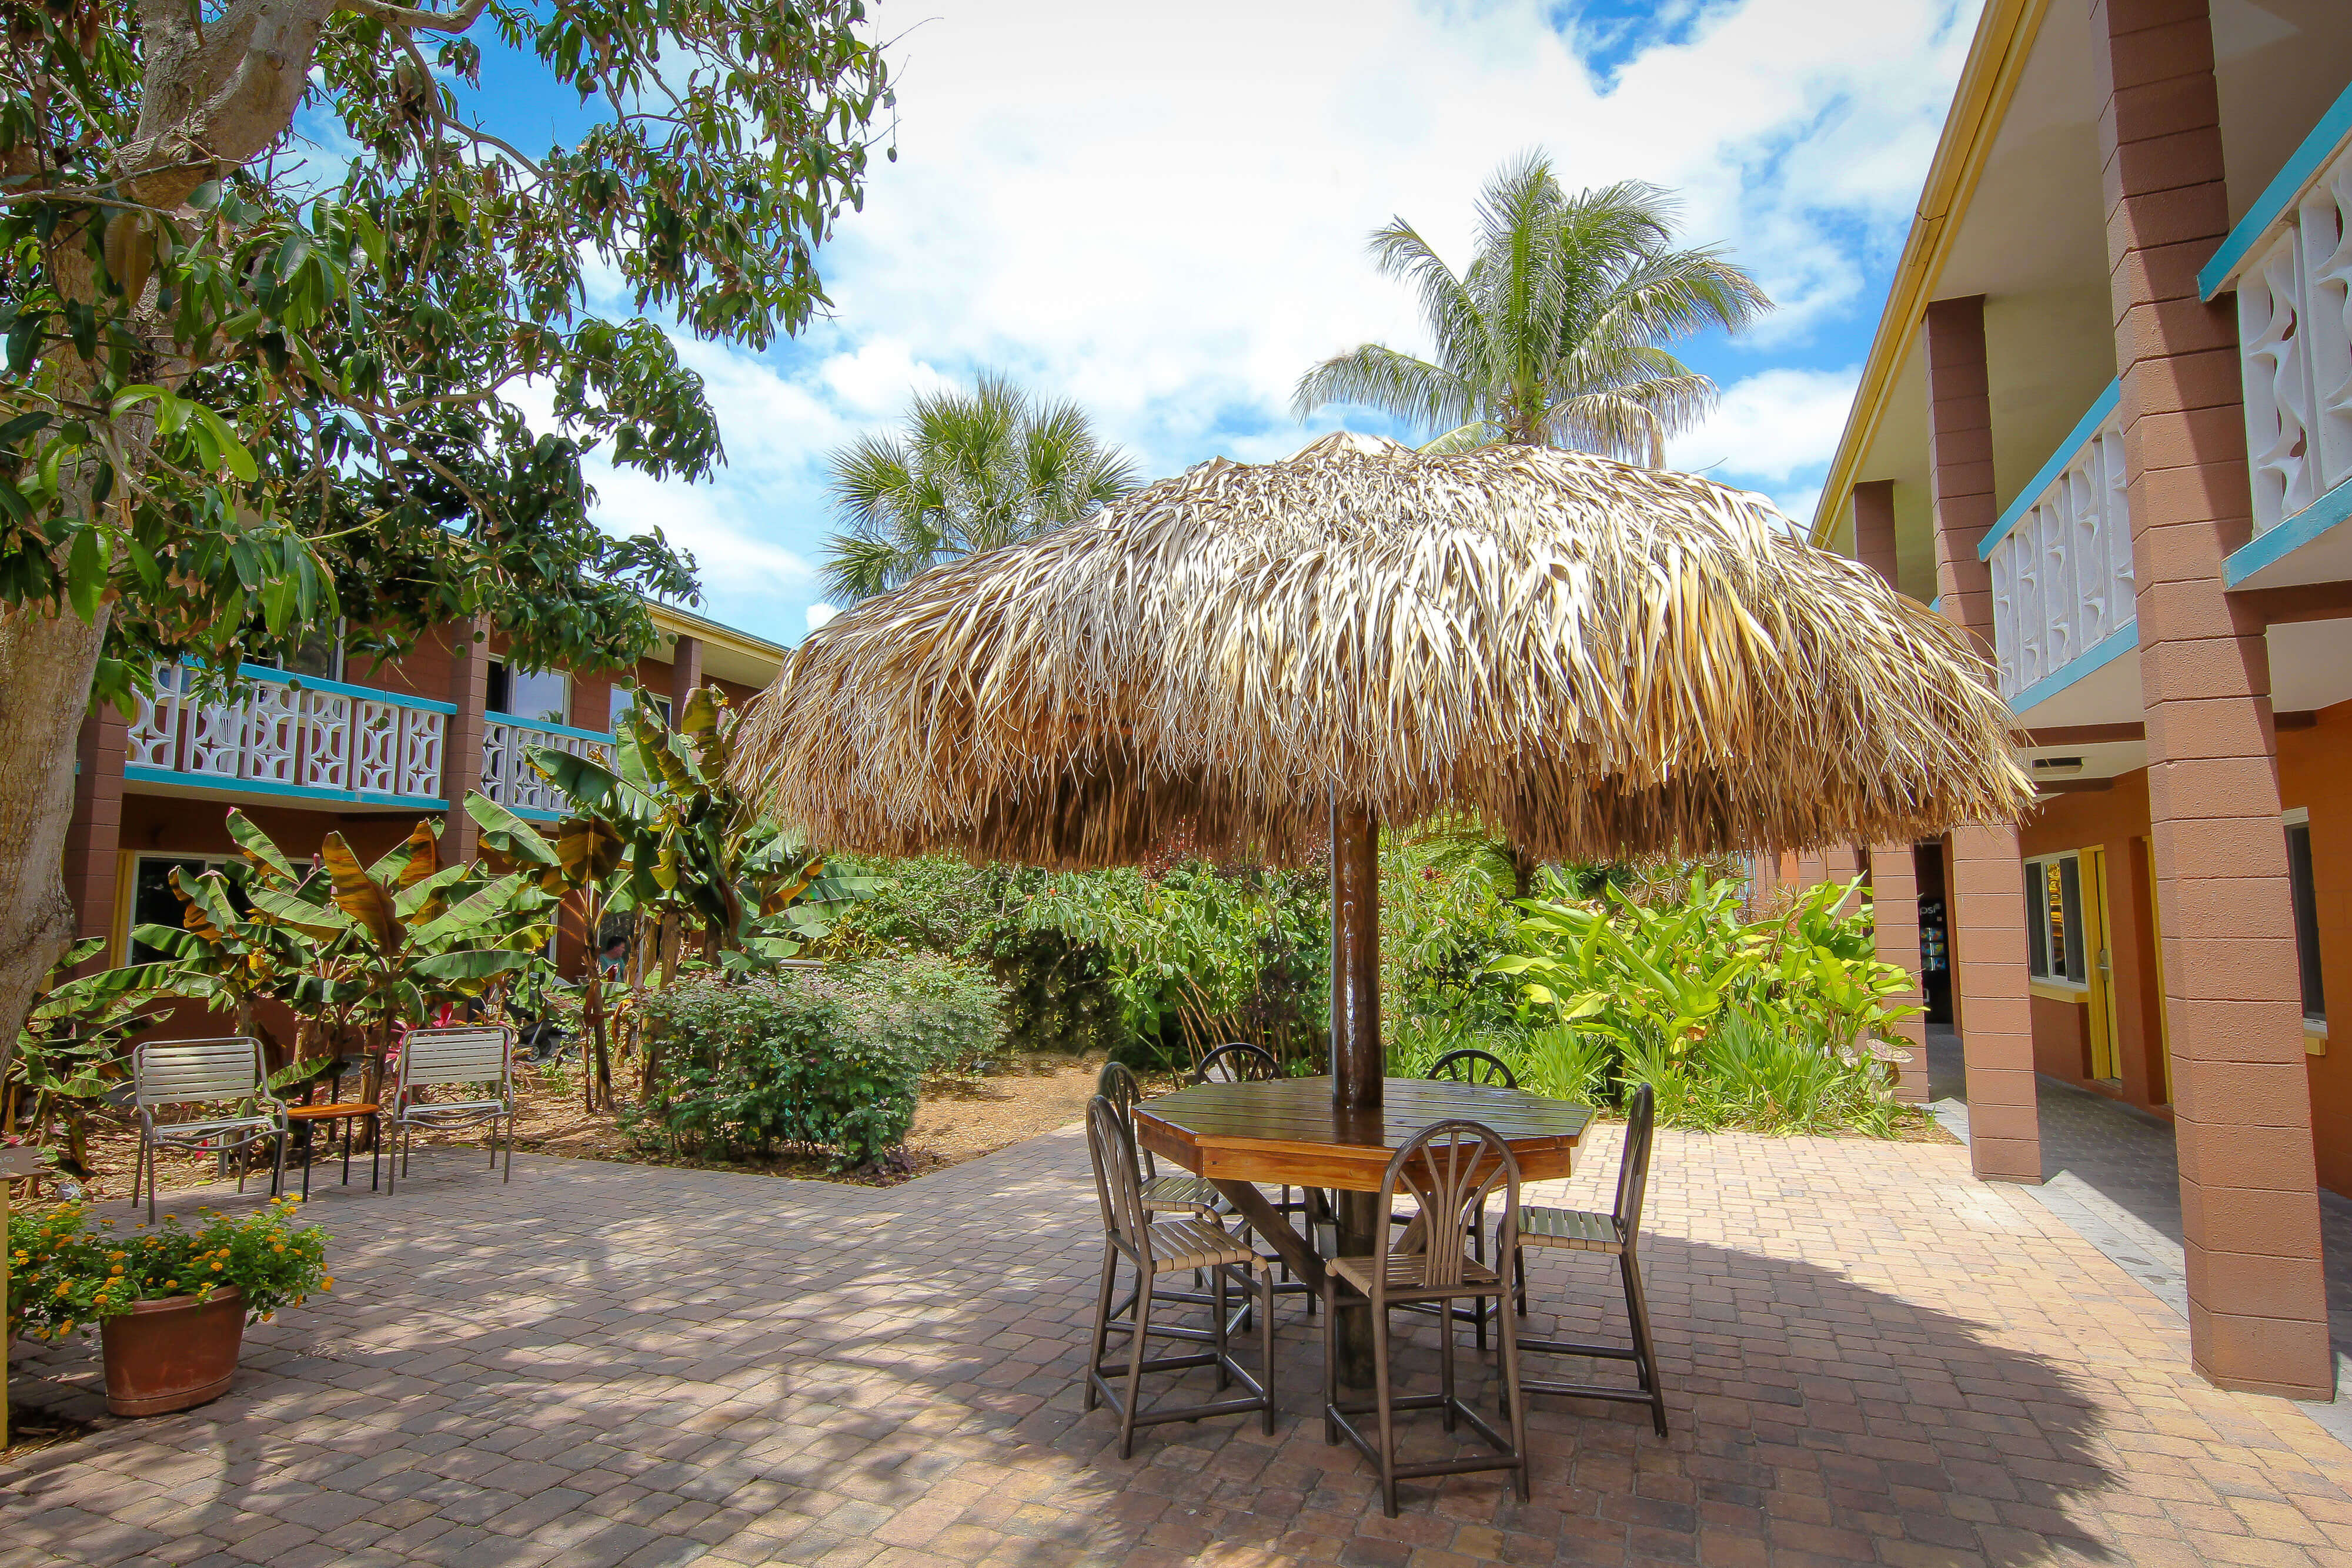 Tropically landscaped resort grounds with thatched umbrella and chairs | Wakulla Suites a Westgate Resort